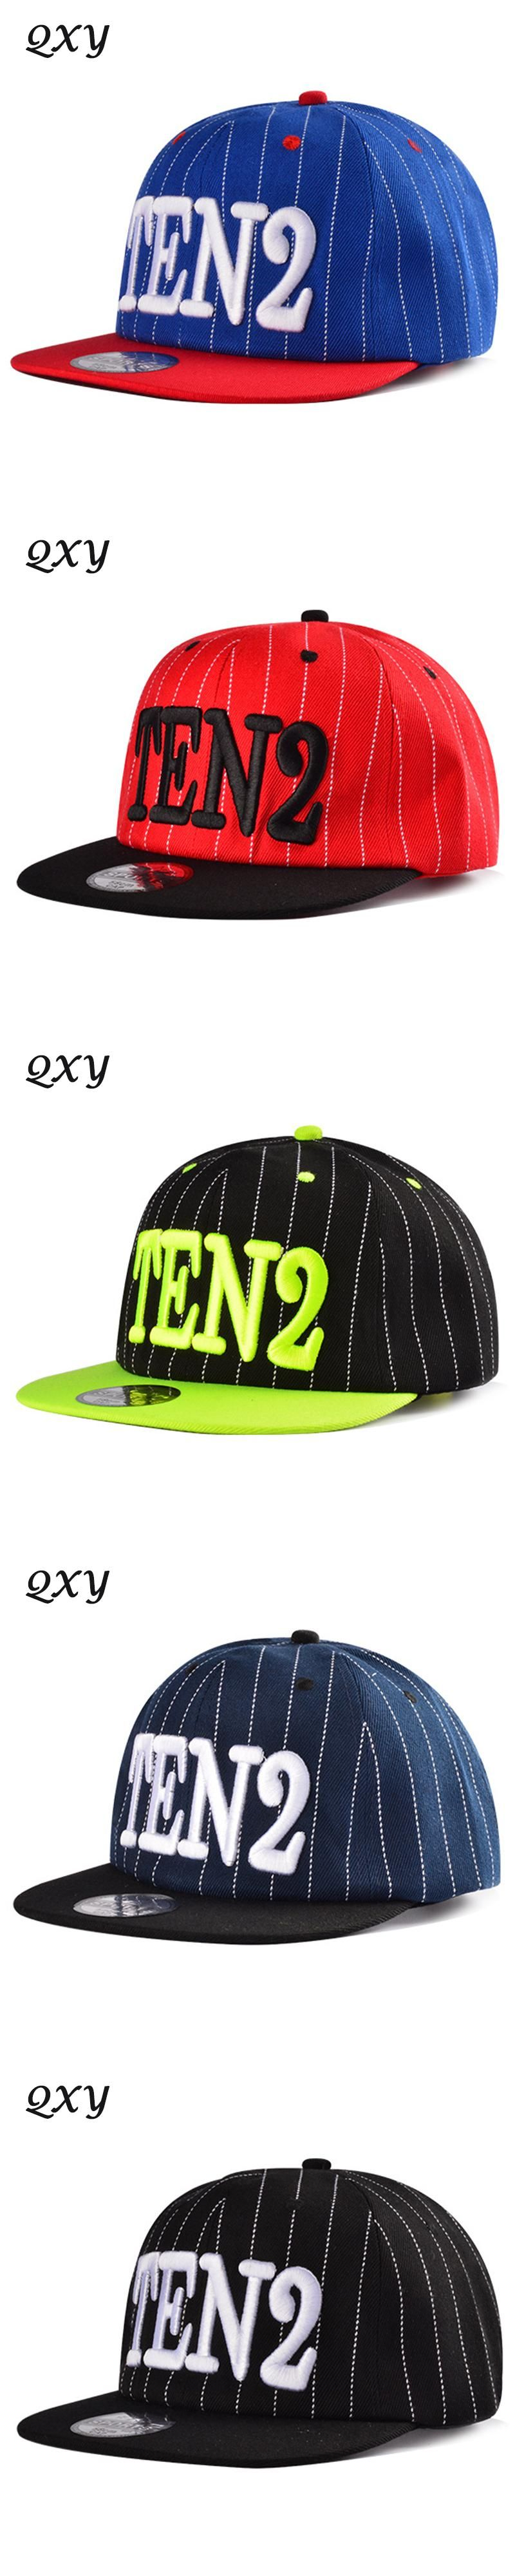 men women sports baseball cap fashion sun hat casual adjustable